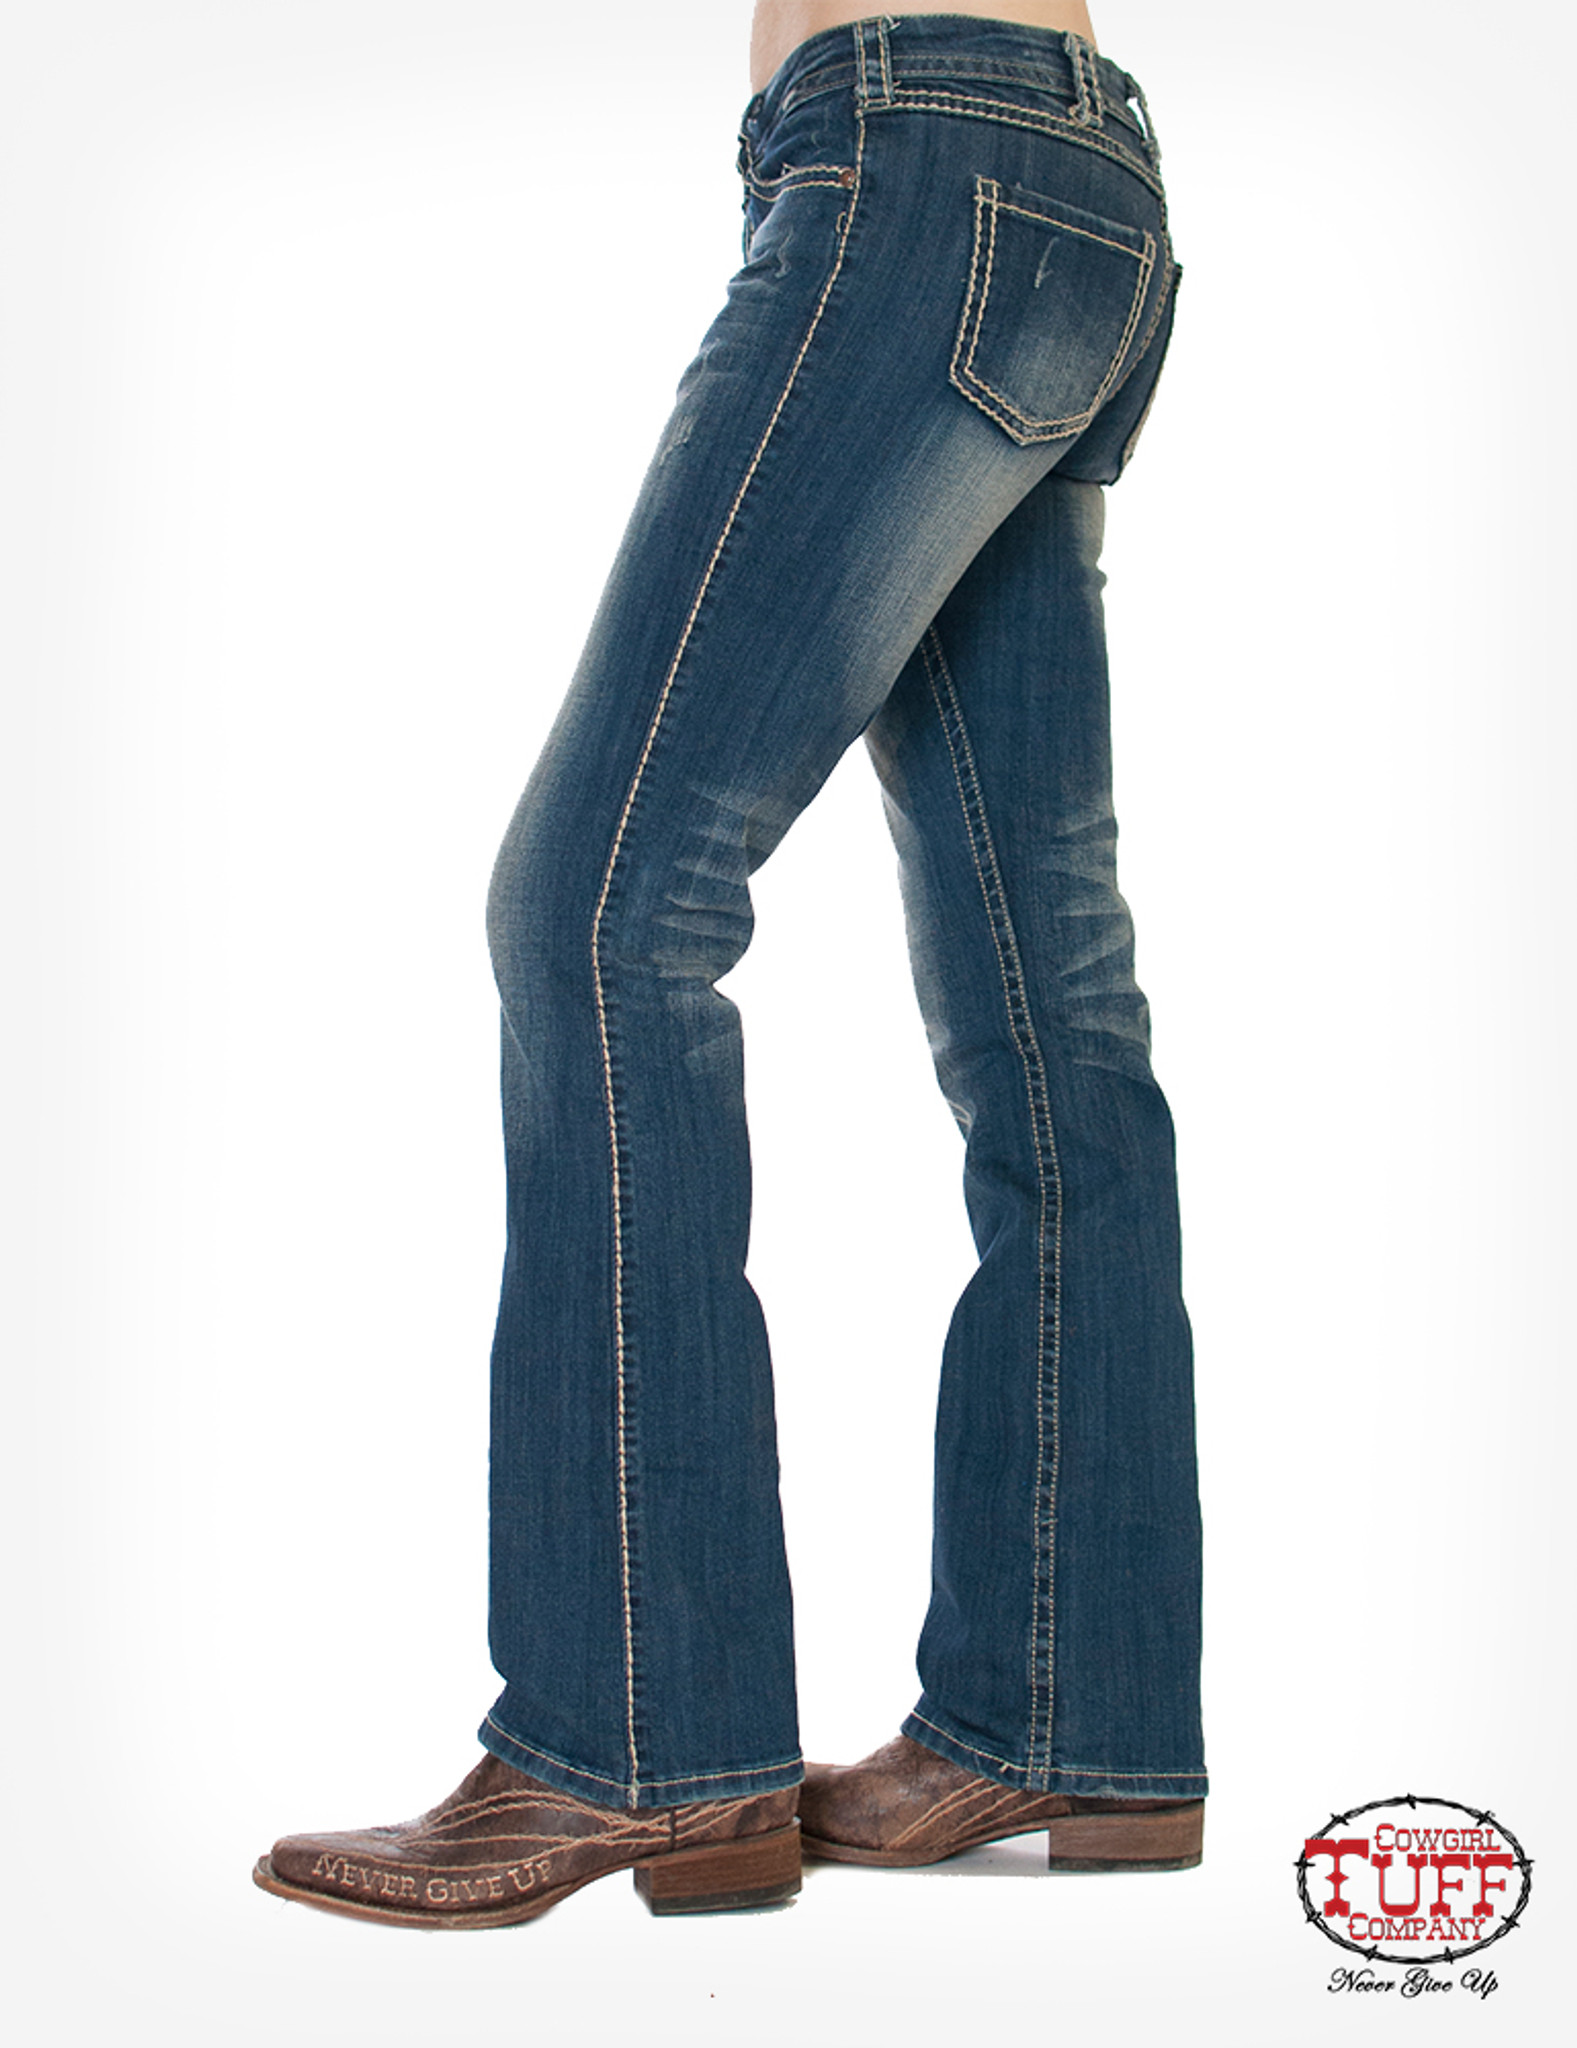 Women's Cowgirl Tuff Jeans, Never Give